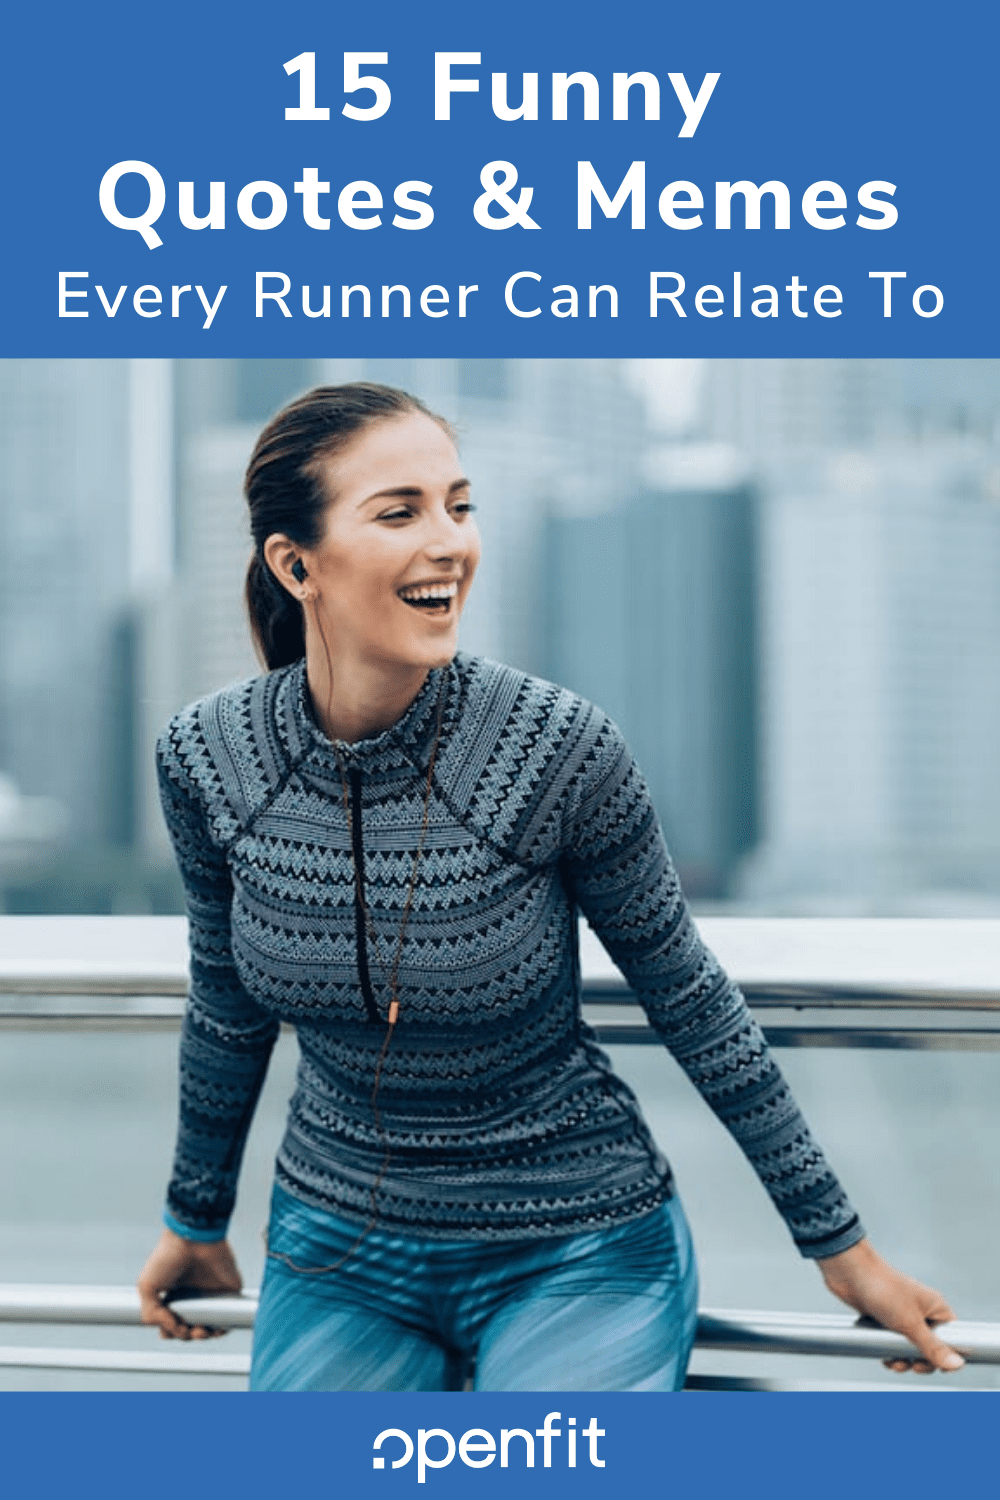 funny running quotes pin image